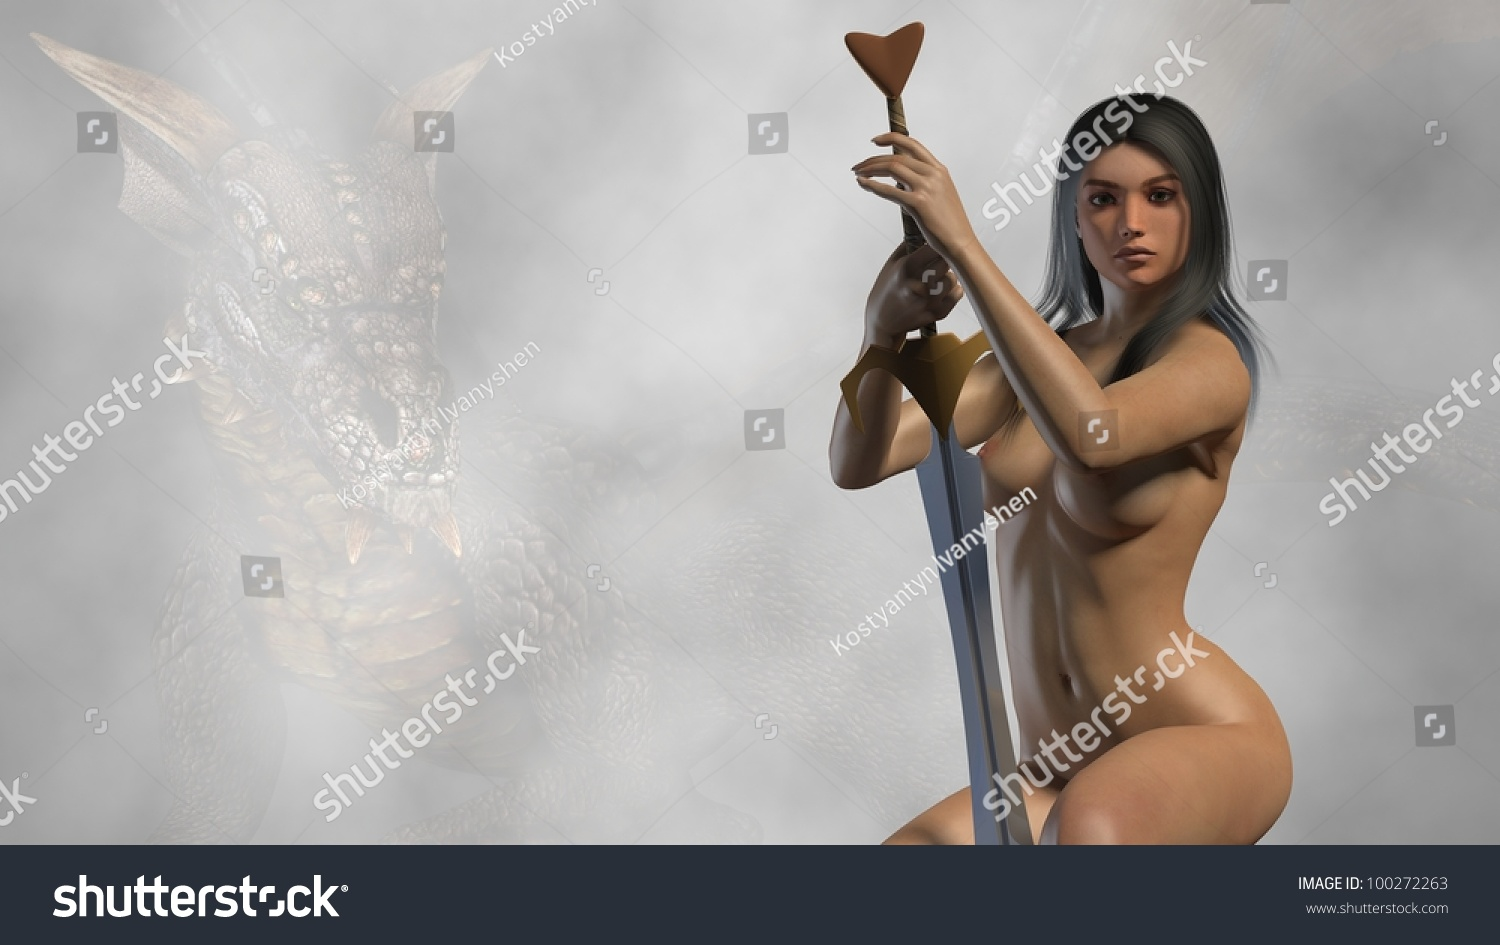 Nude warriors girls 3d wallpaper nude images